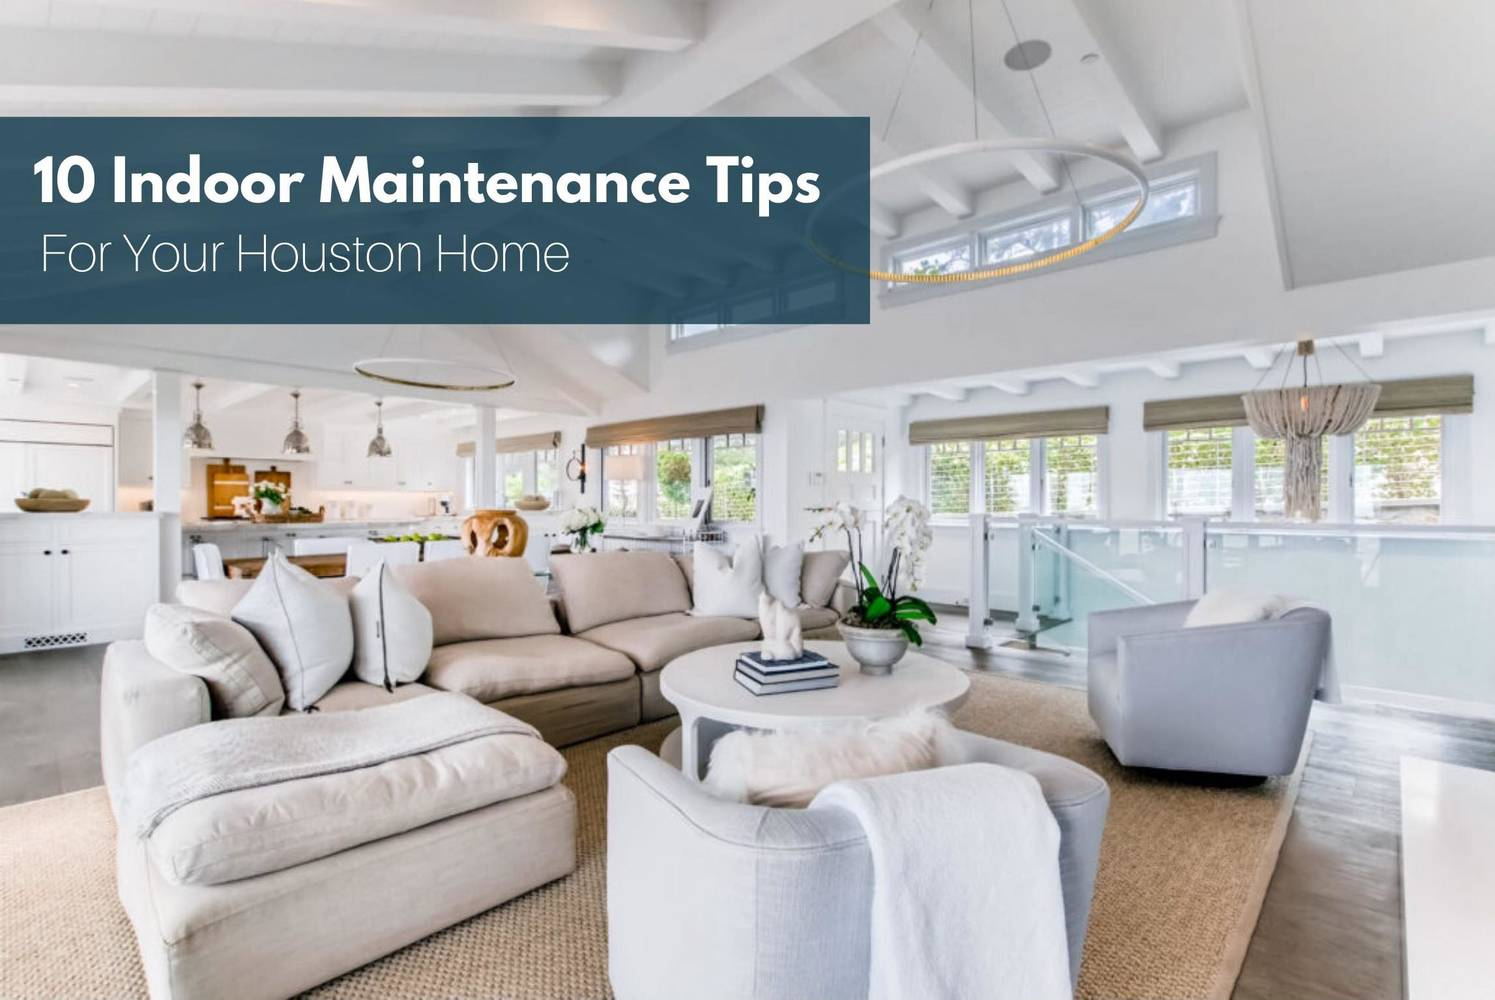 Increase The Value Of Your Home: 10 Maintenance Tips You Can Do Indoors